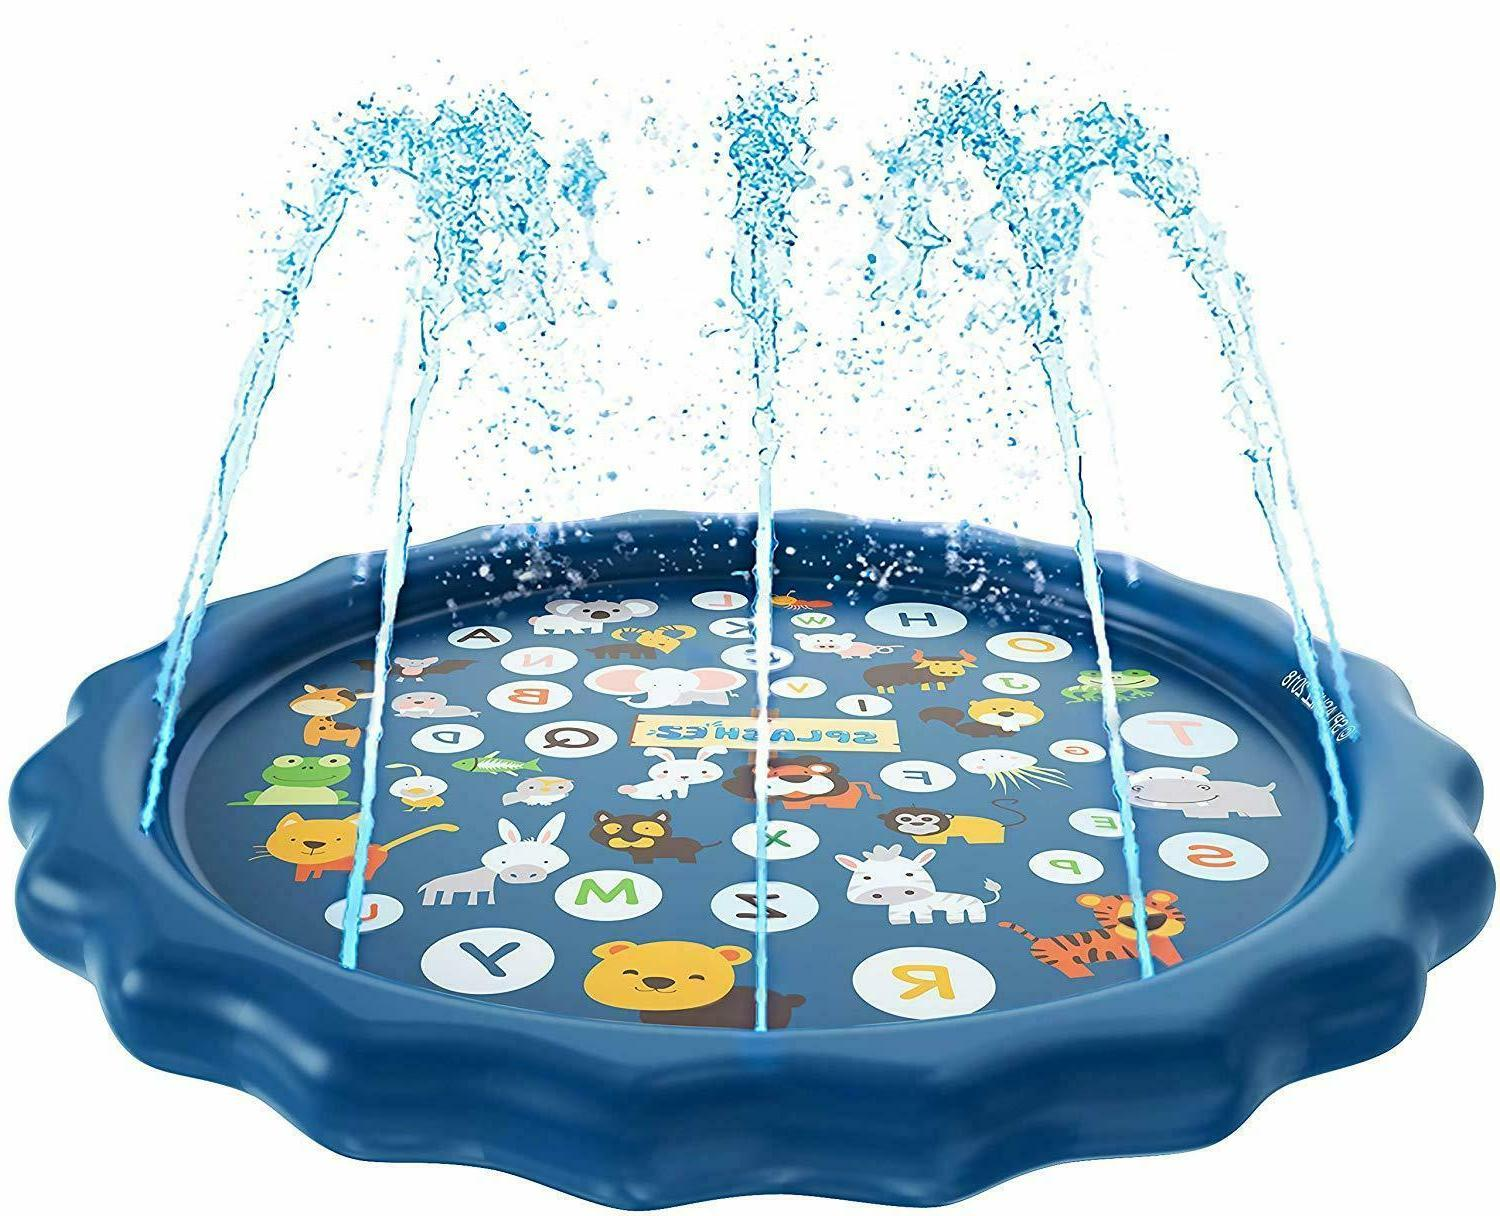 outdoor swimming pool 3 in 1 sprinkler